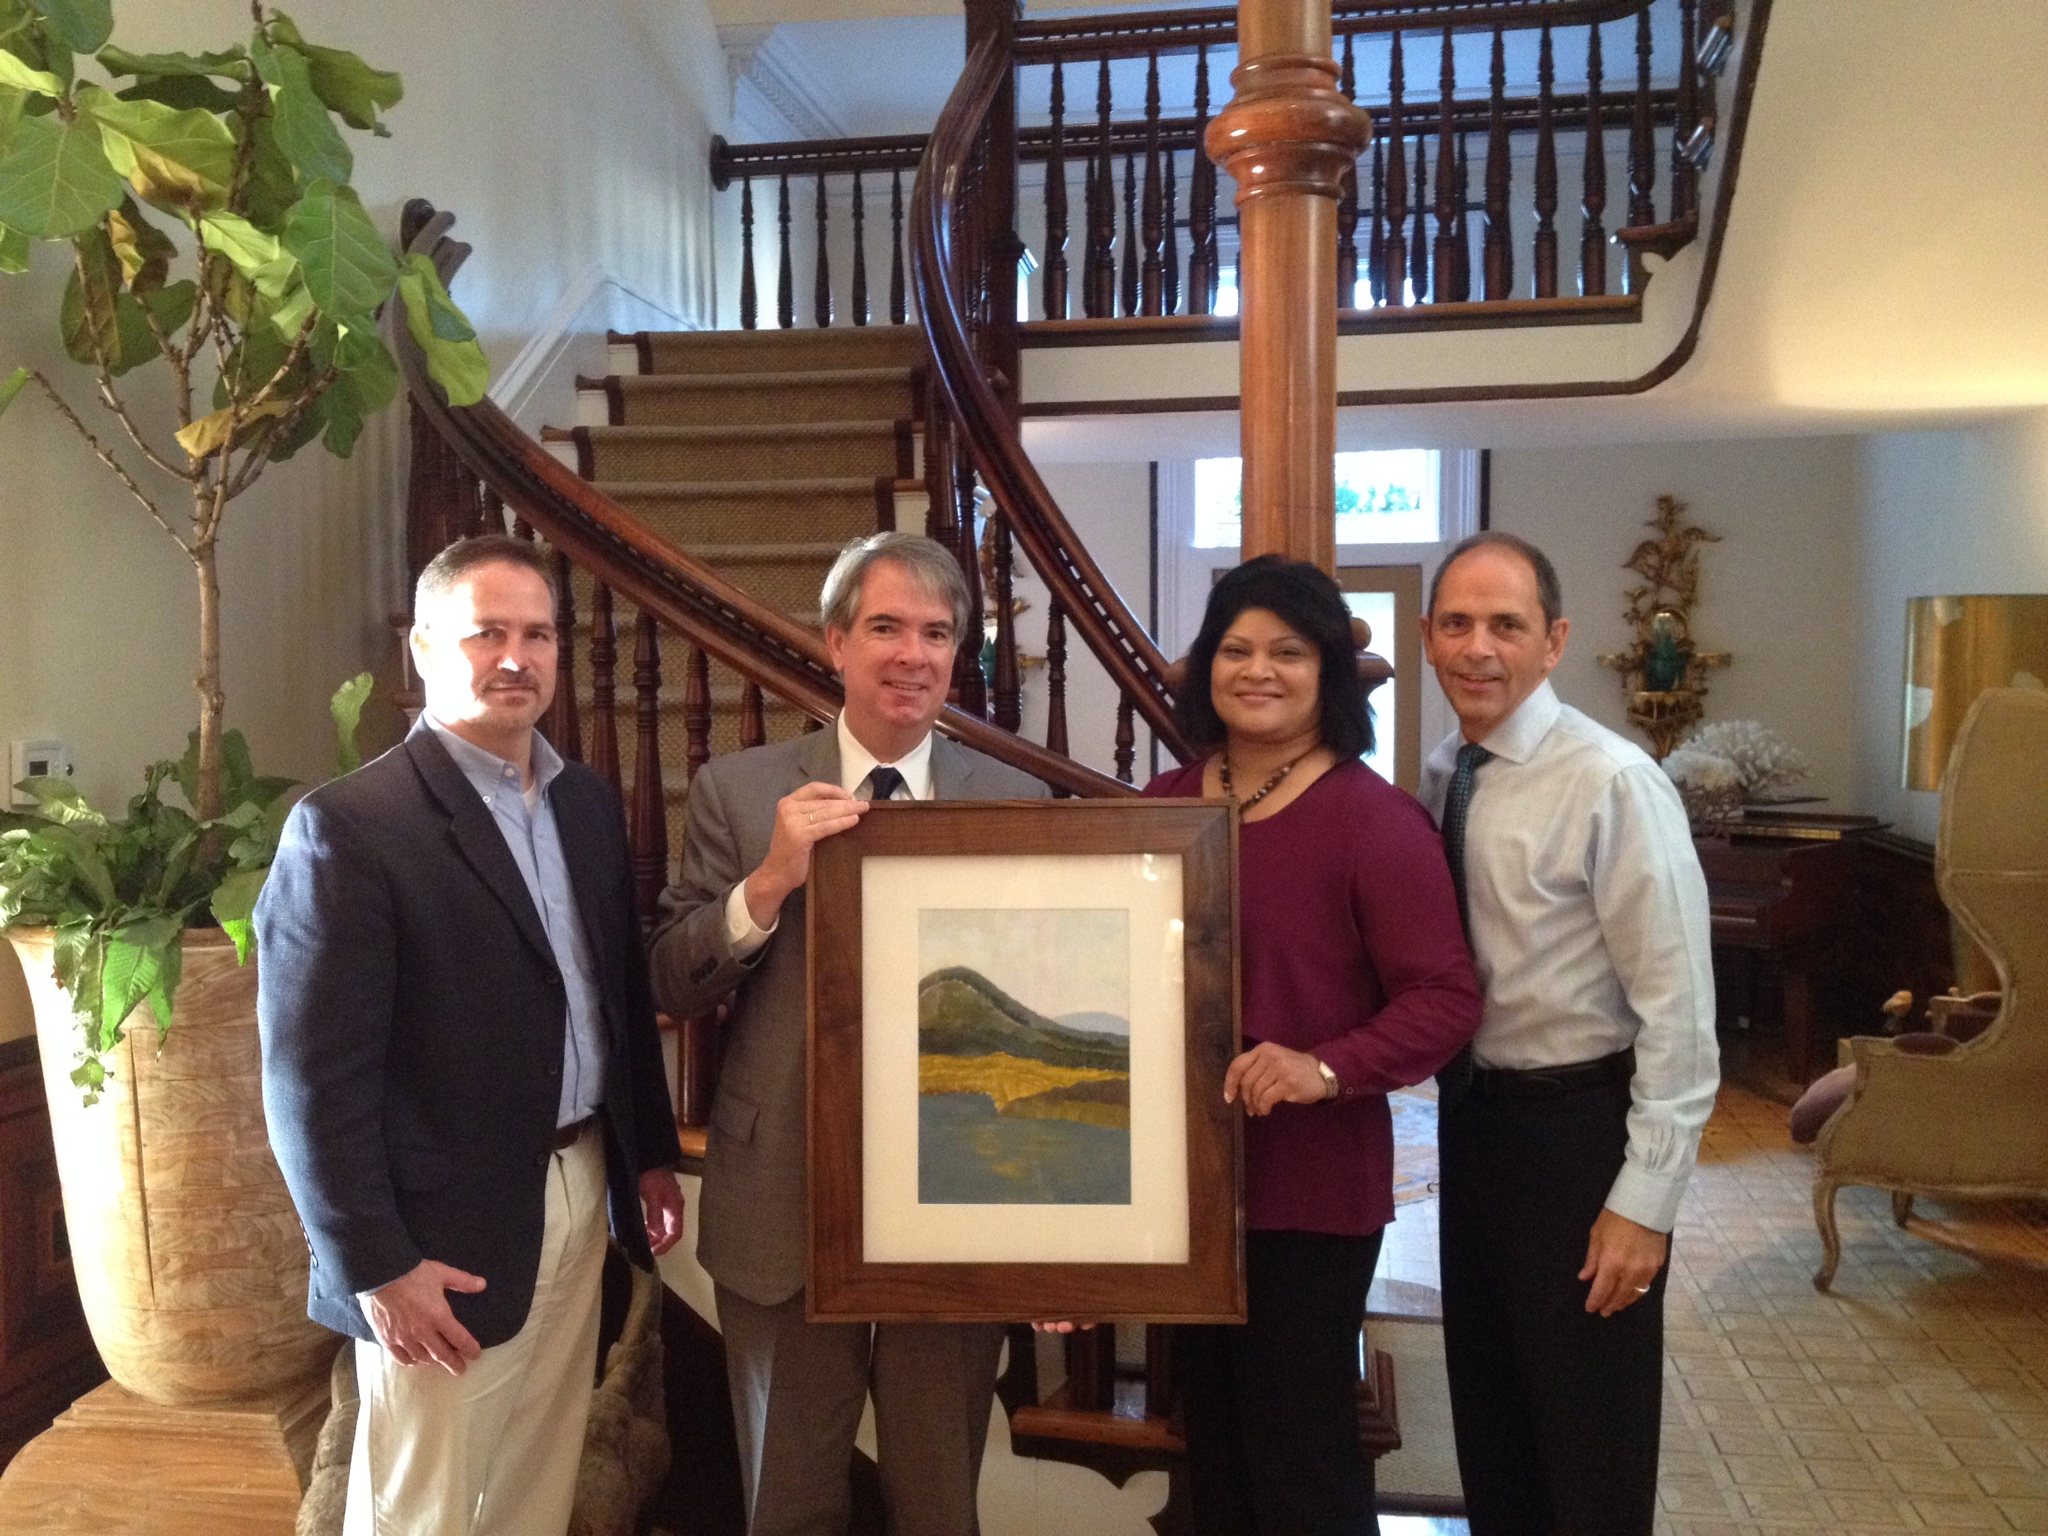 Lexington Deputy Executive Director Dan Richardson, Executive Director Shaloni Winston and Lexington Foundation Executive Director Wally Hart present SCAD Executive Director of External Relations Danny Filson with a painting of the Adirondacks. The piece was painted by Victor Colon who studies in Lexington's Creative Expressions Program and the frame was custom made by Susy Easterly, a local artist and SCAD graduate.